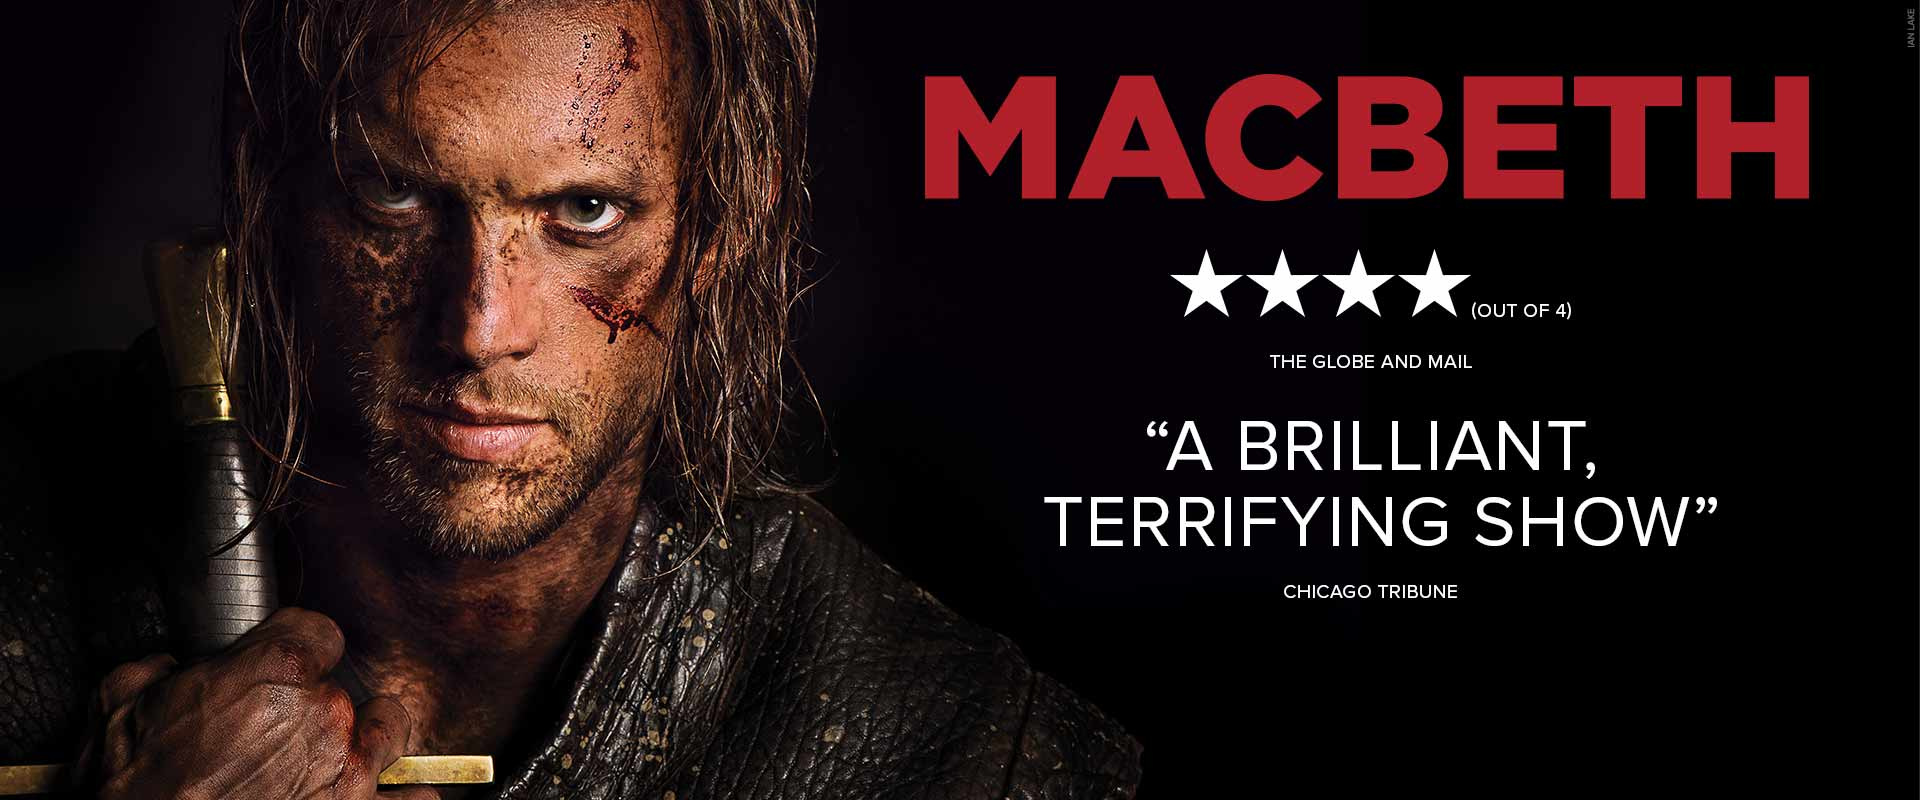 Publicity image from Macbeth